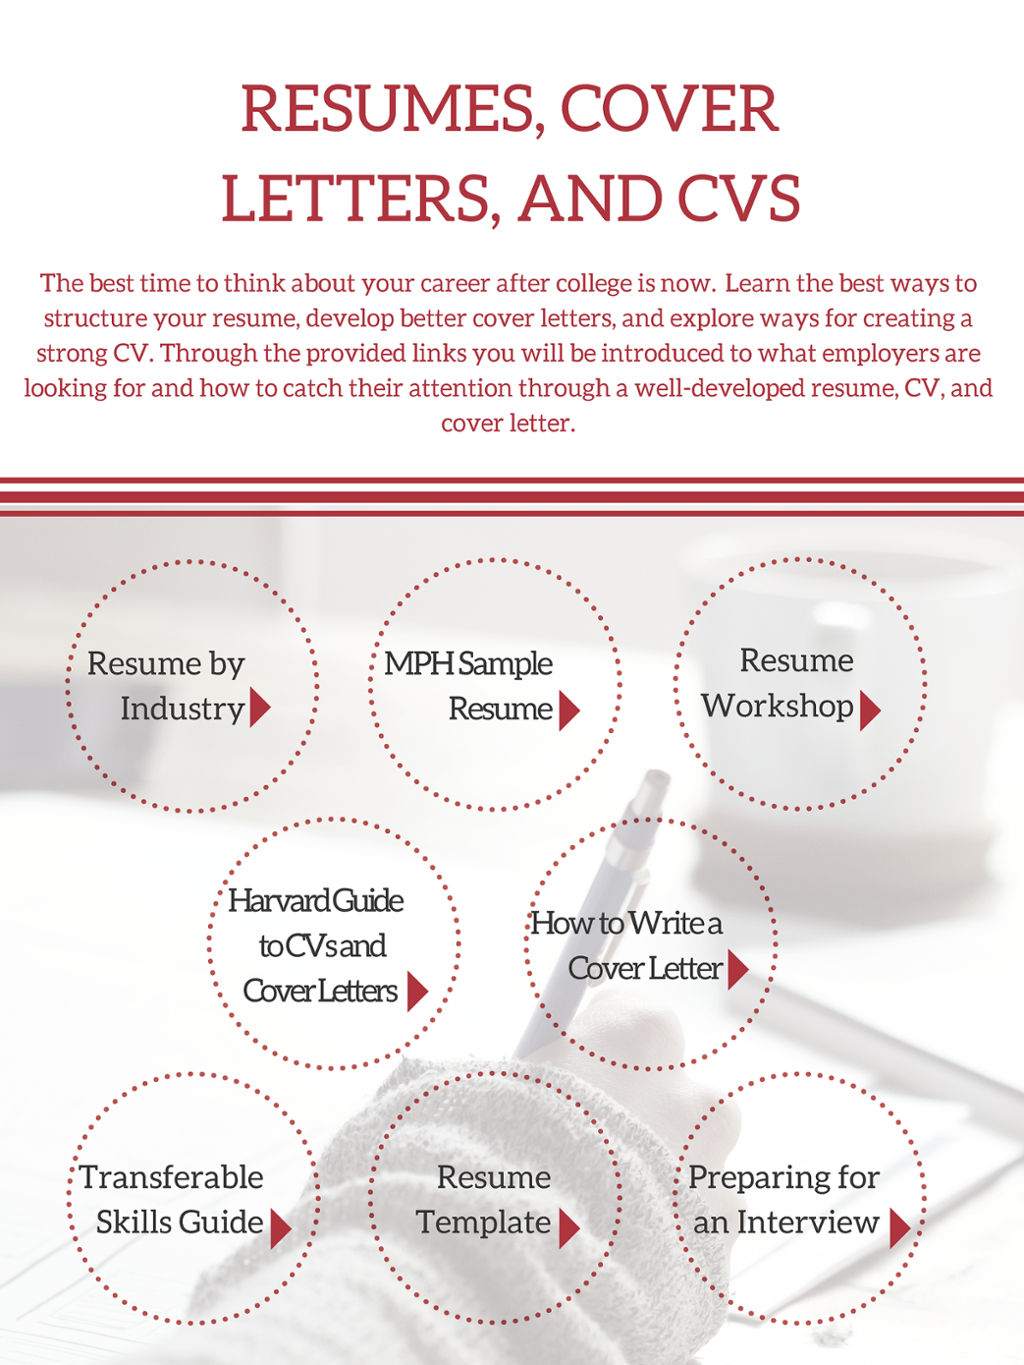 Resumes Cover Letters And Cvs University Of Utah